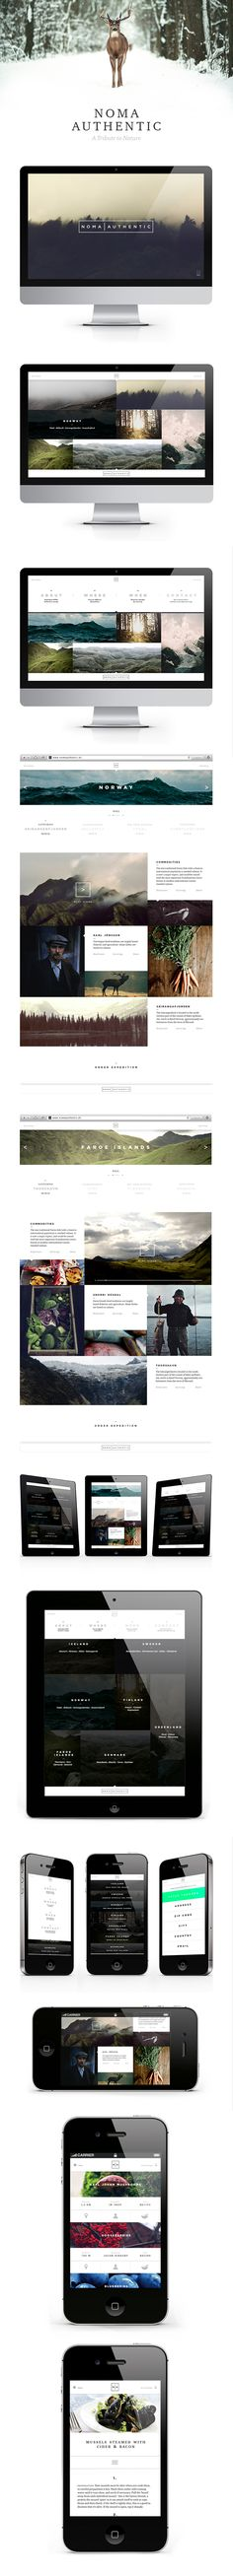 Noma Authentic.  I love the clean layout and photos of nature in this design.  It's very appealing to me and works well with their concept of having people want to learn more about commodity, hunting and fishing in  Scandinavia.